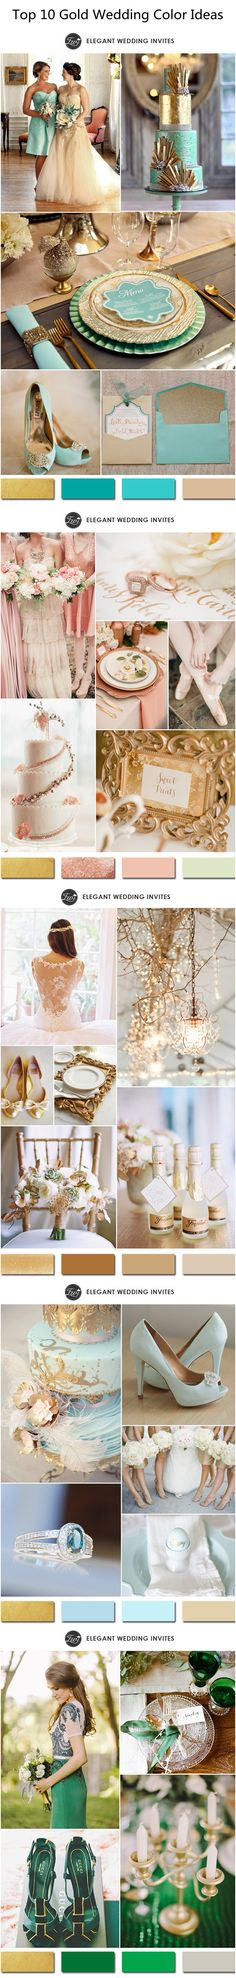 Top 10 Gold Wedding Color Ideas 2015 Trends #weddingcolors